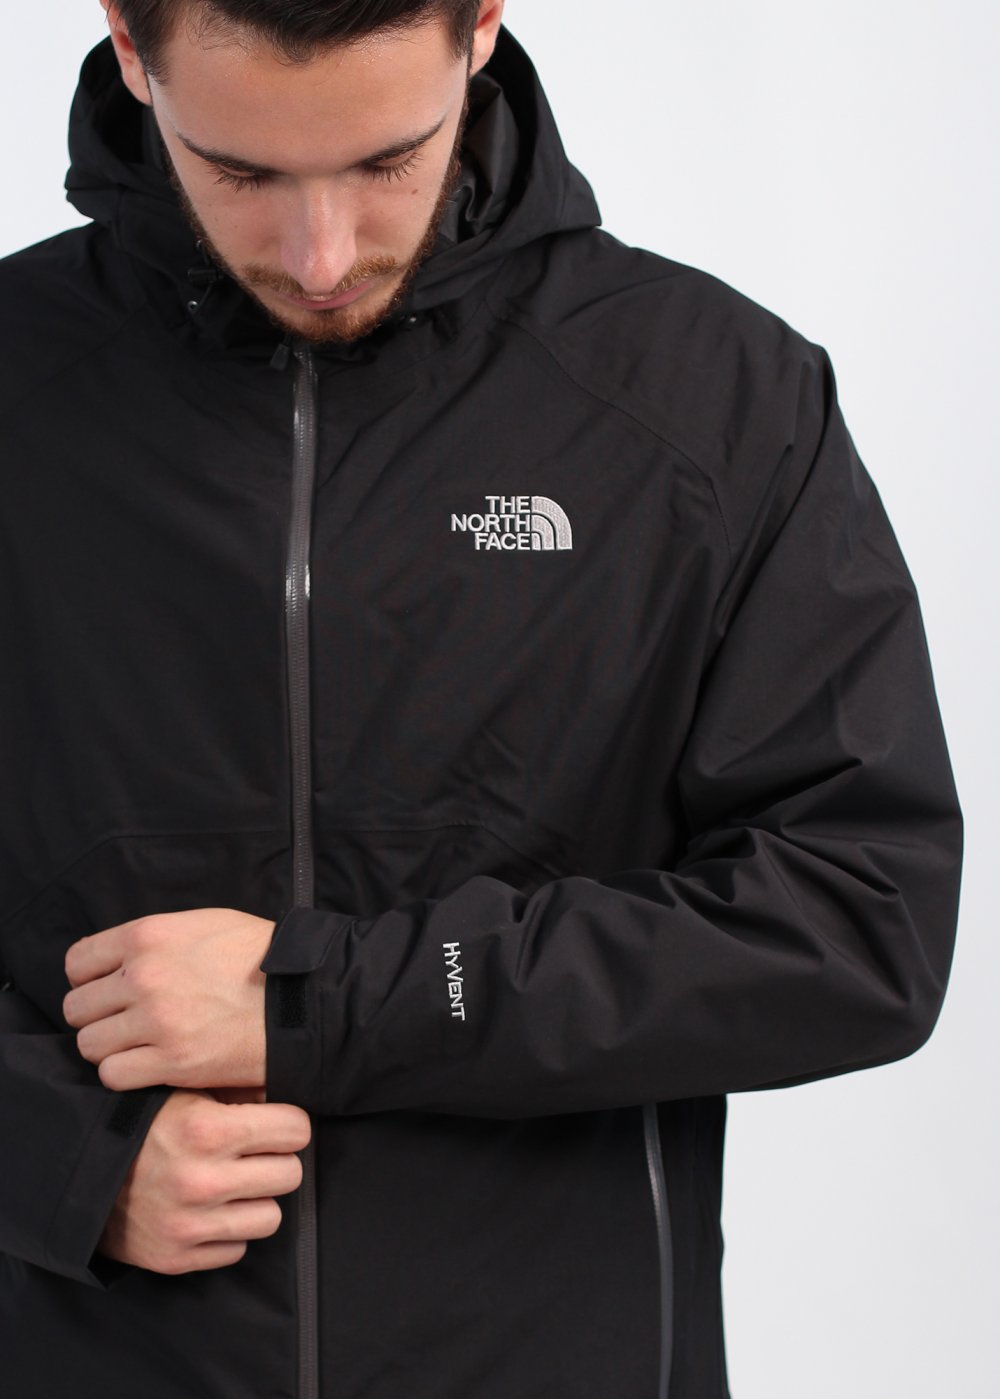 The North Face Stratos Jacket Black